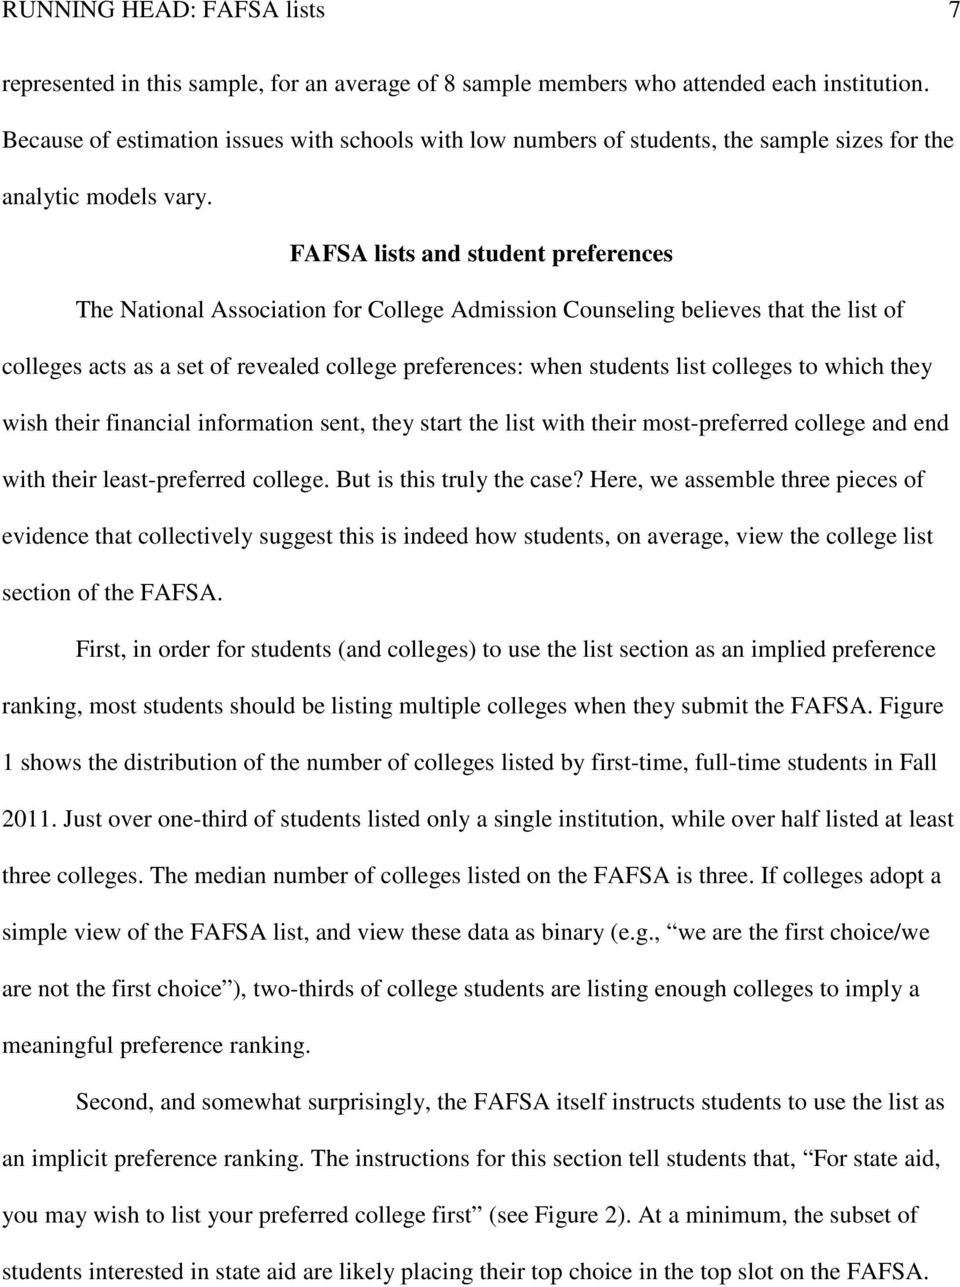 FAFSA lists and student preferences The National Association for College Admission Counseling believes that the list of colleges acts as a set of revealed college preferences: when students list